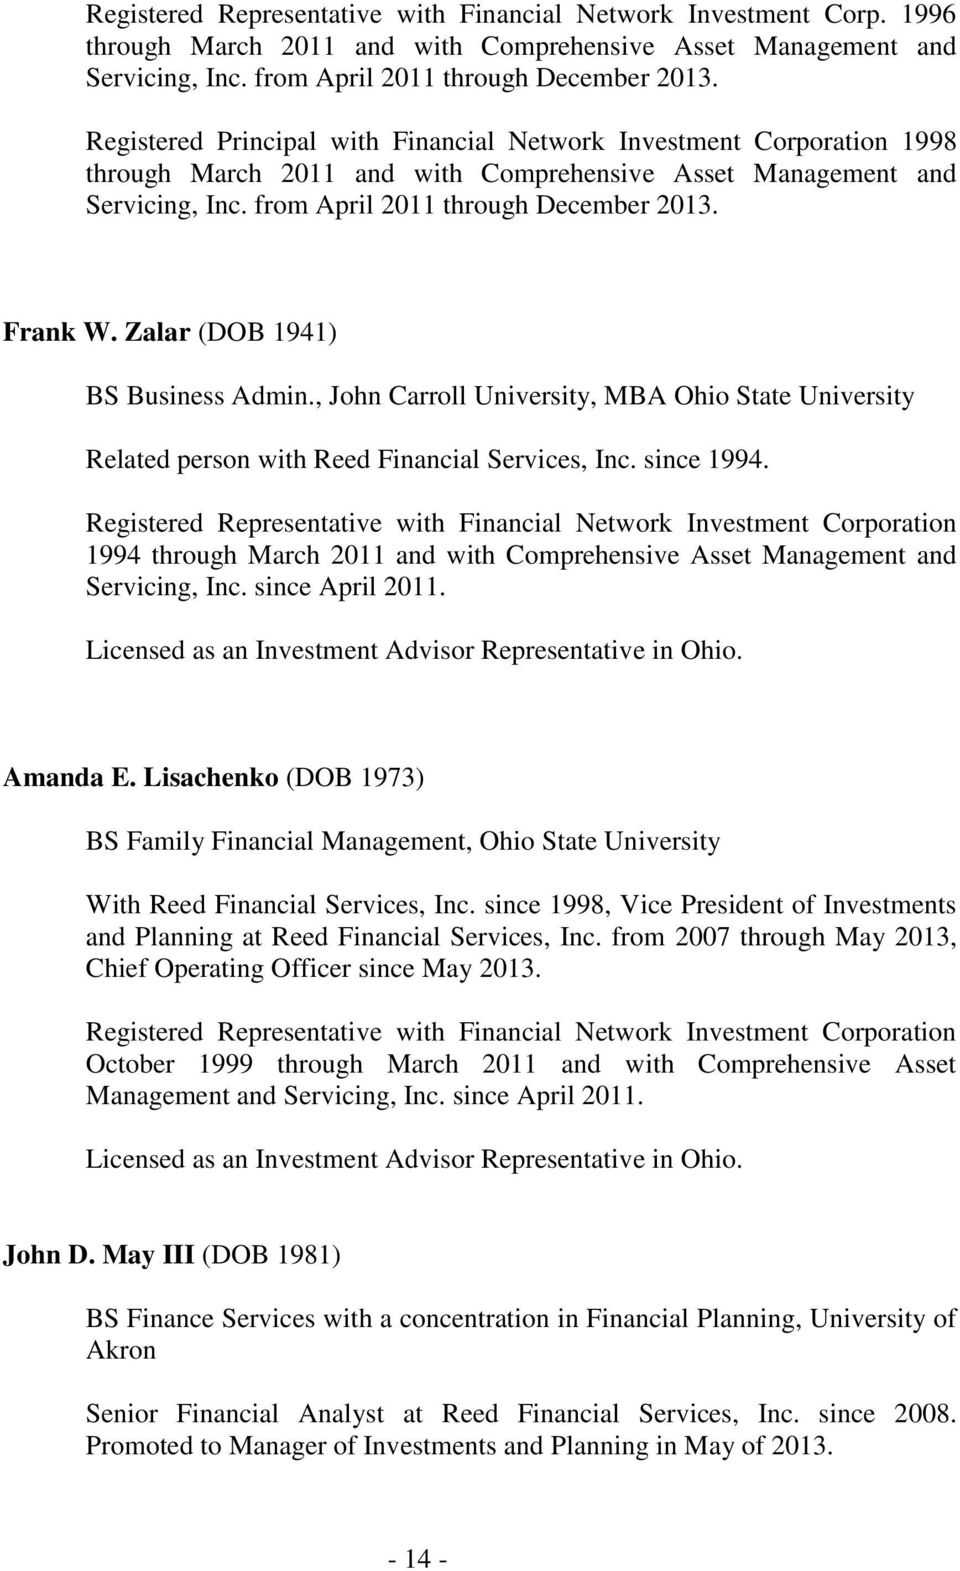 Zalar (DOB 1941) BS Business Admin., John Carroll University, MBA Ohio State University Related person with Reed Financial Services, Inc. since 1994.